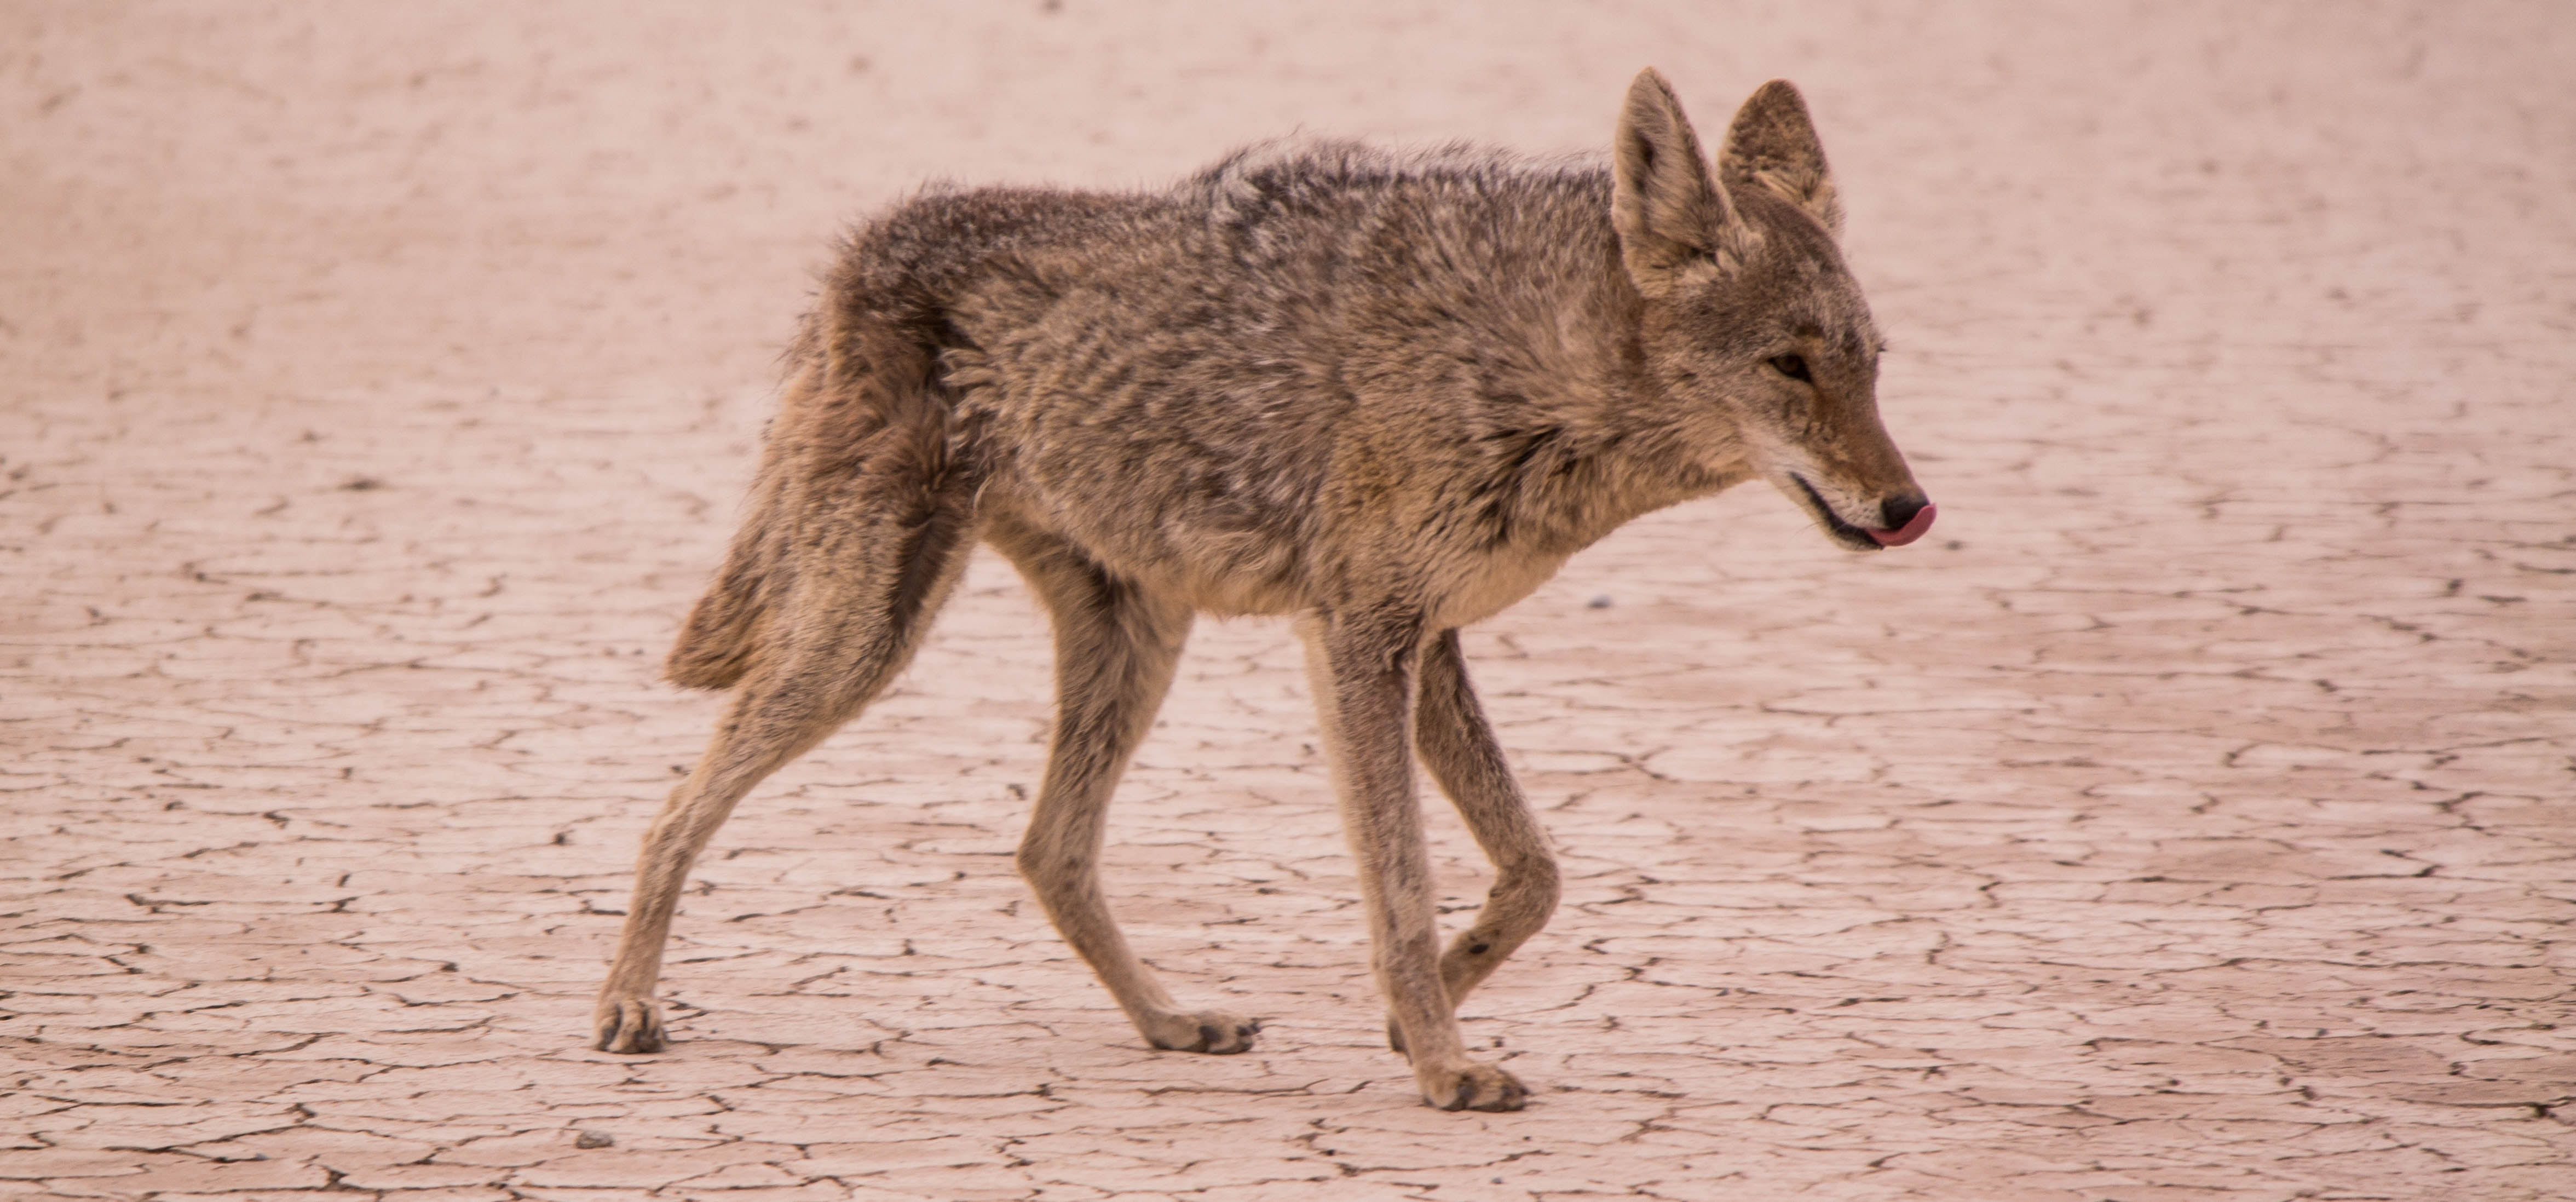 A coyote licking its lips as it walks across a barren wasteland